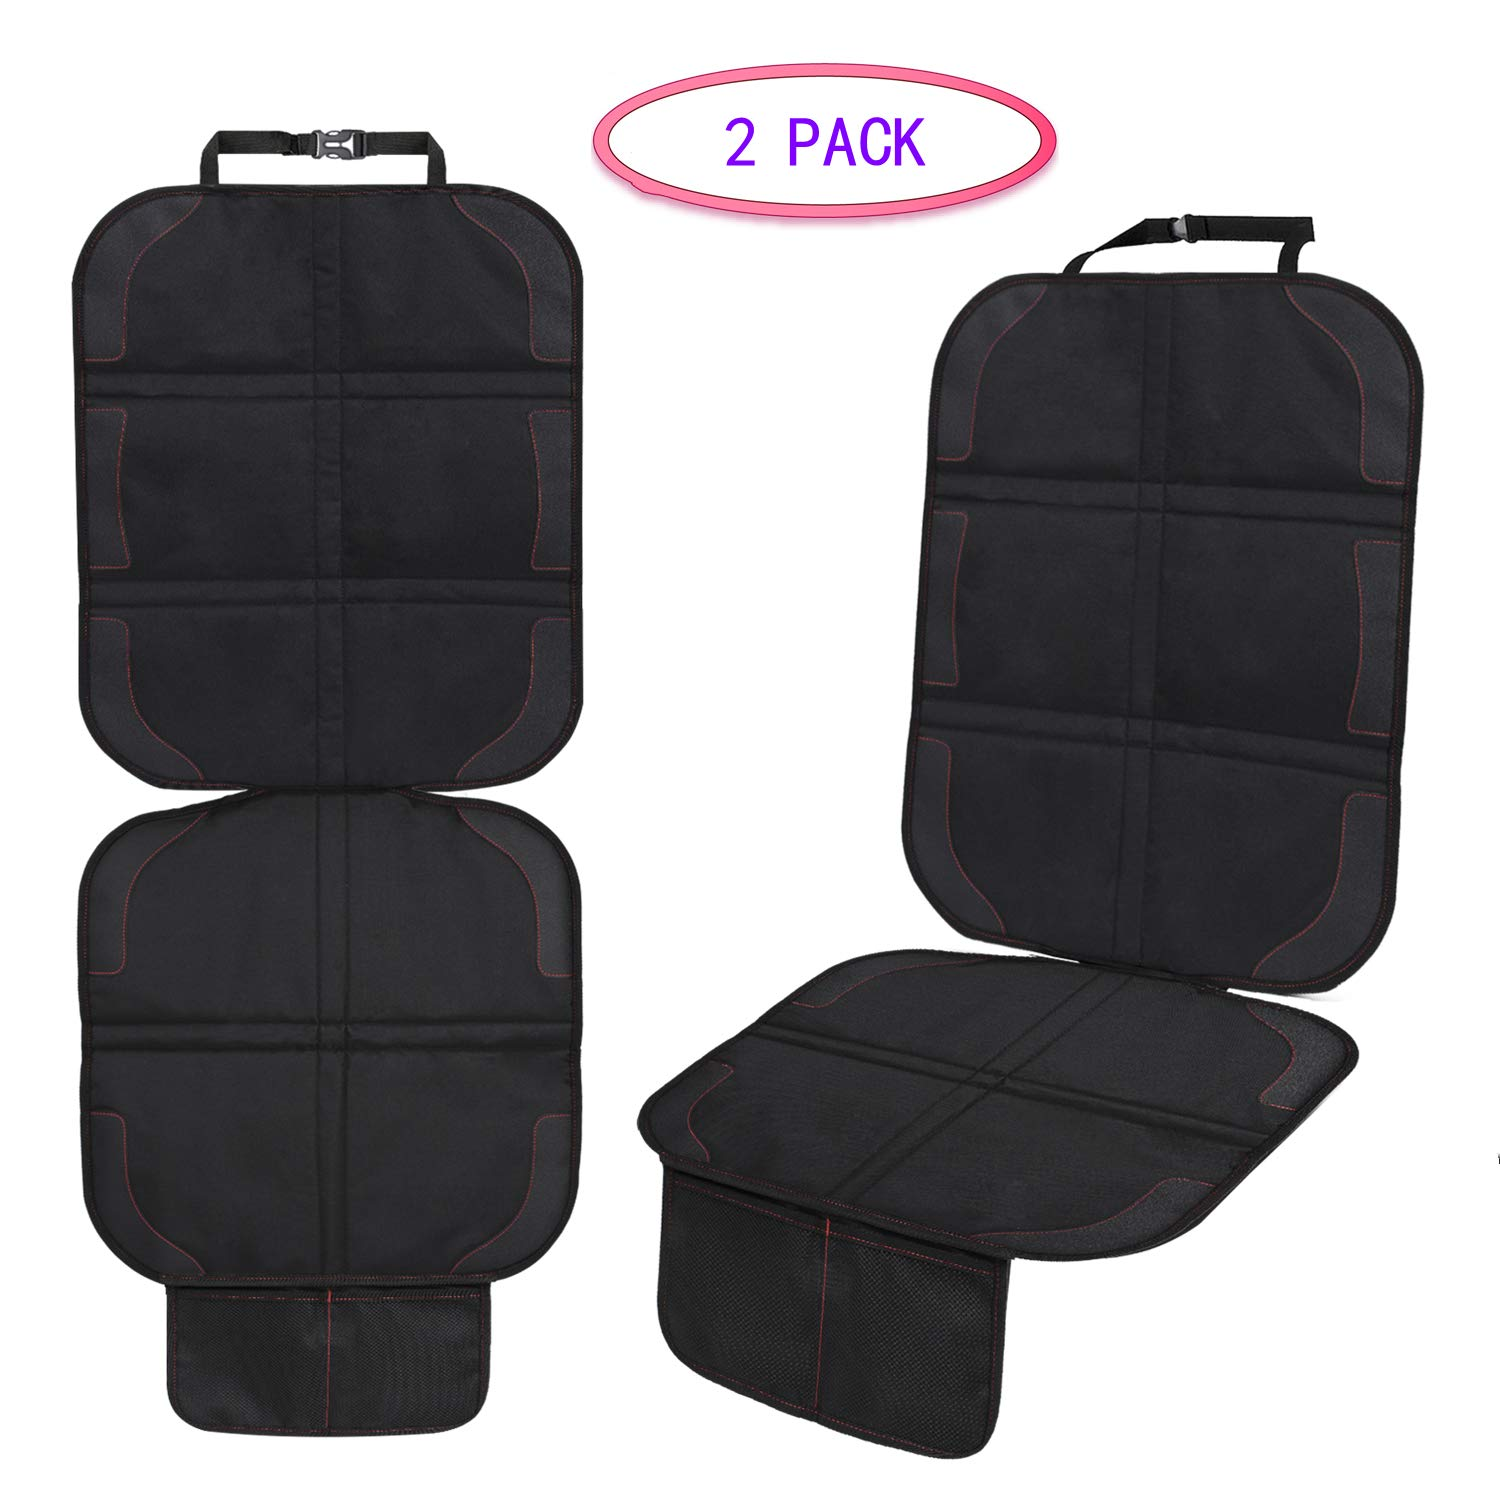 2-Pack Car Seat Protector Baby Child Car Auto Seat Cover Dog Mat Vehicle Cover with Organizer